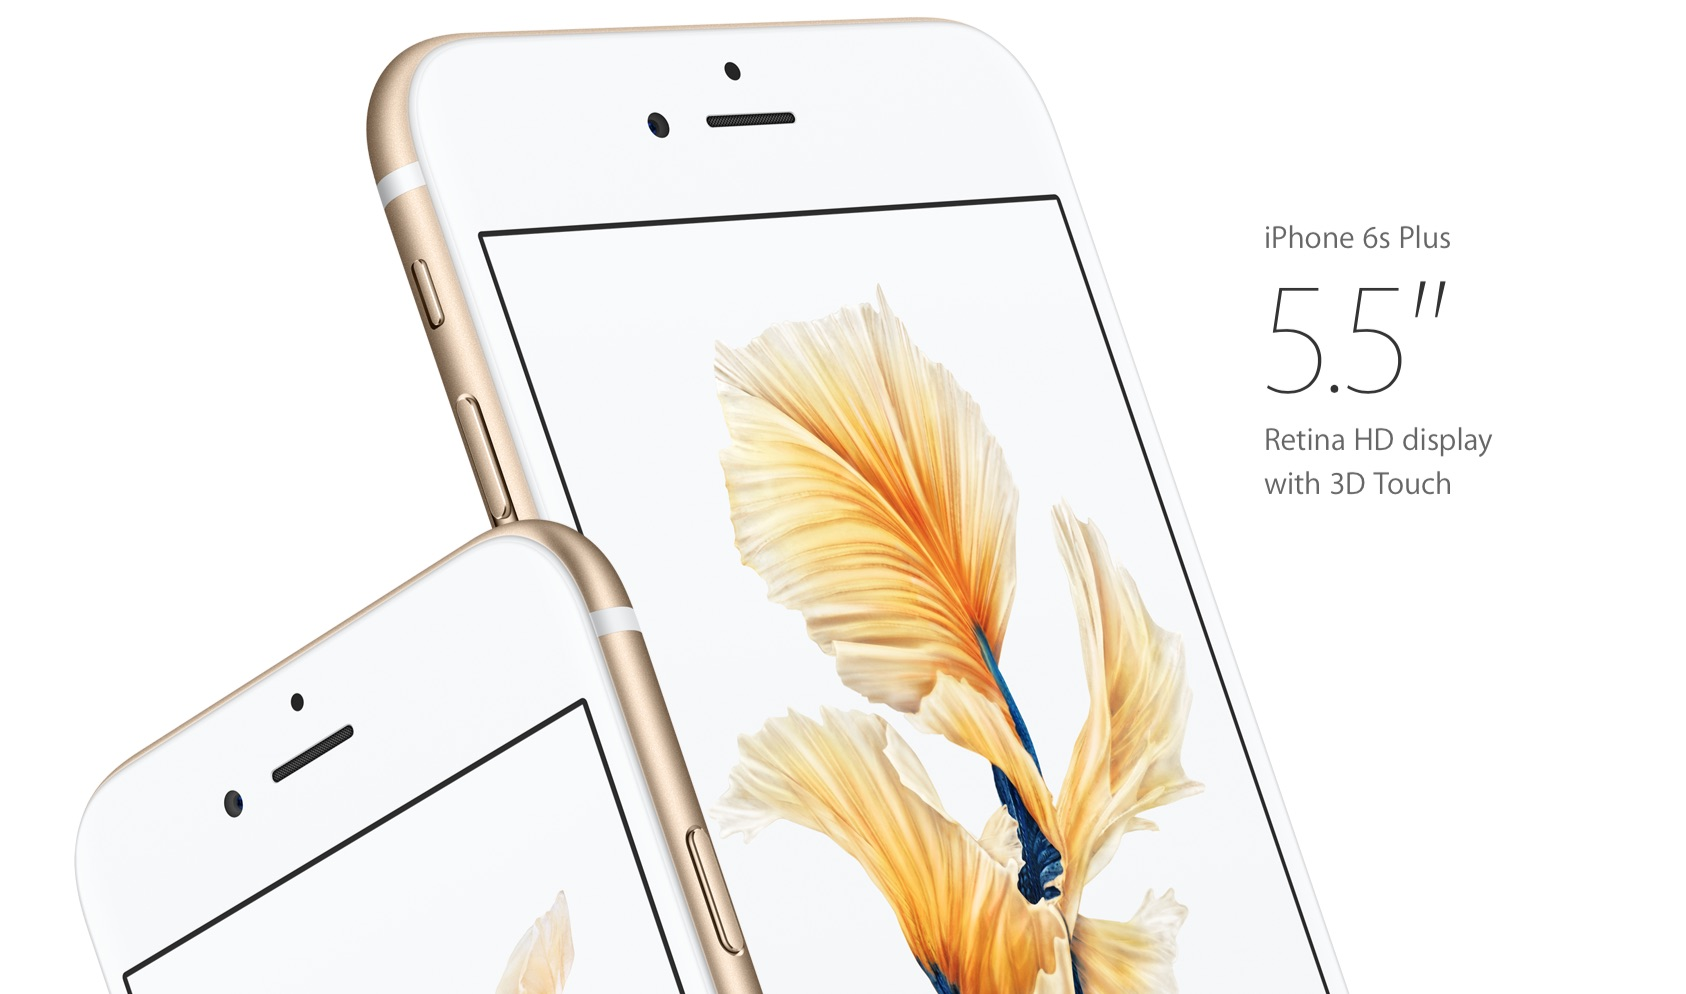 Low supplies of iPhone 6s Plus are a 'light' issue